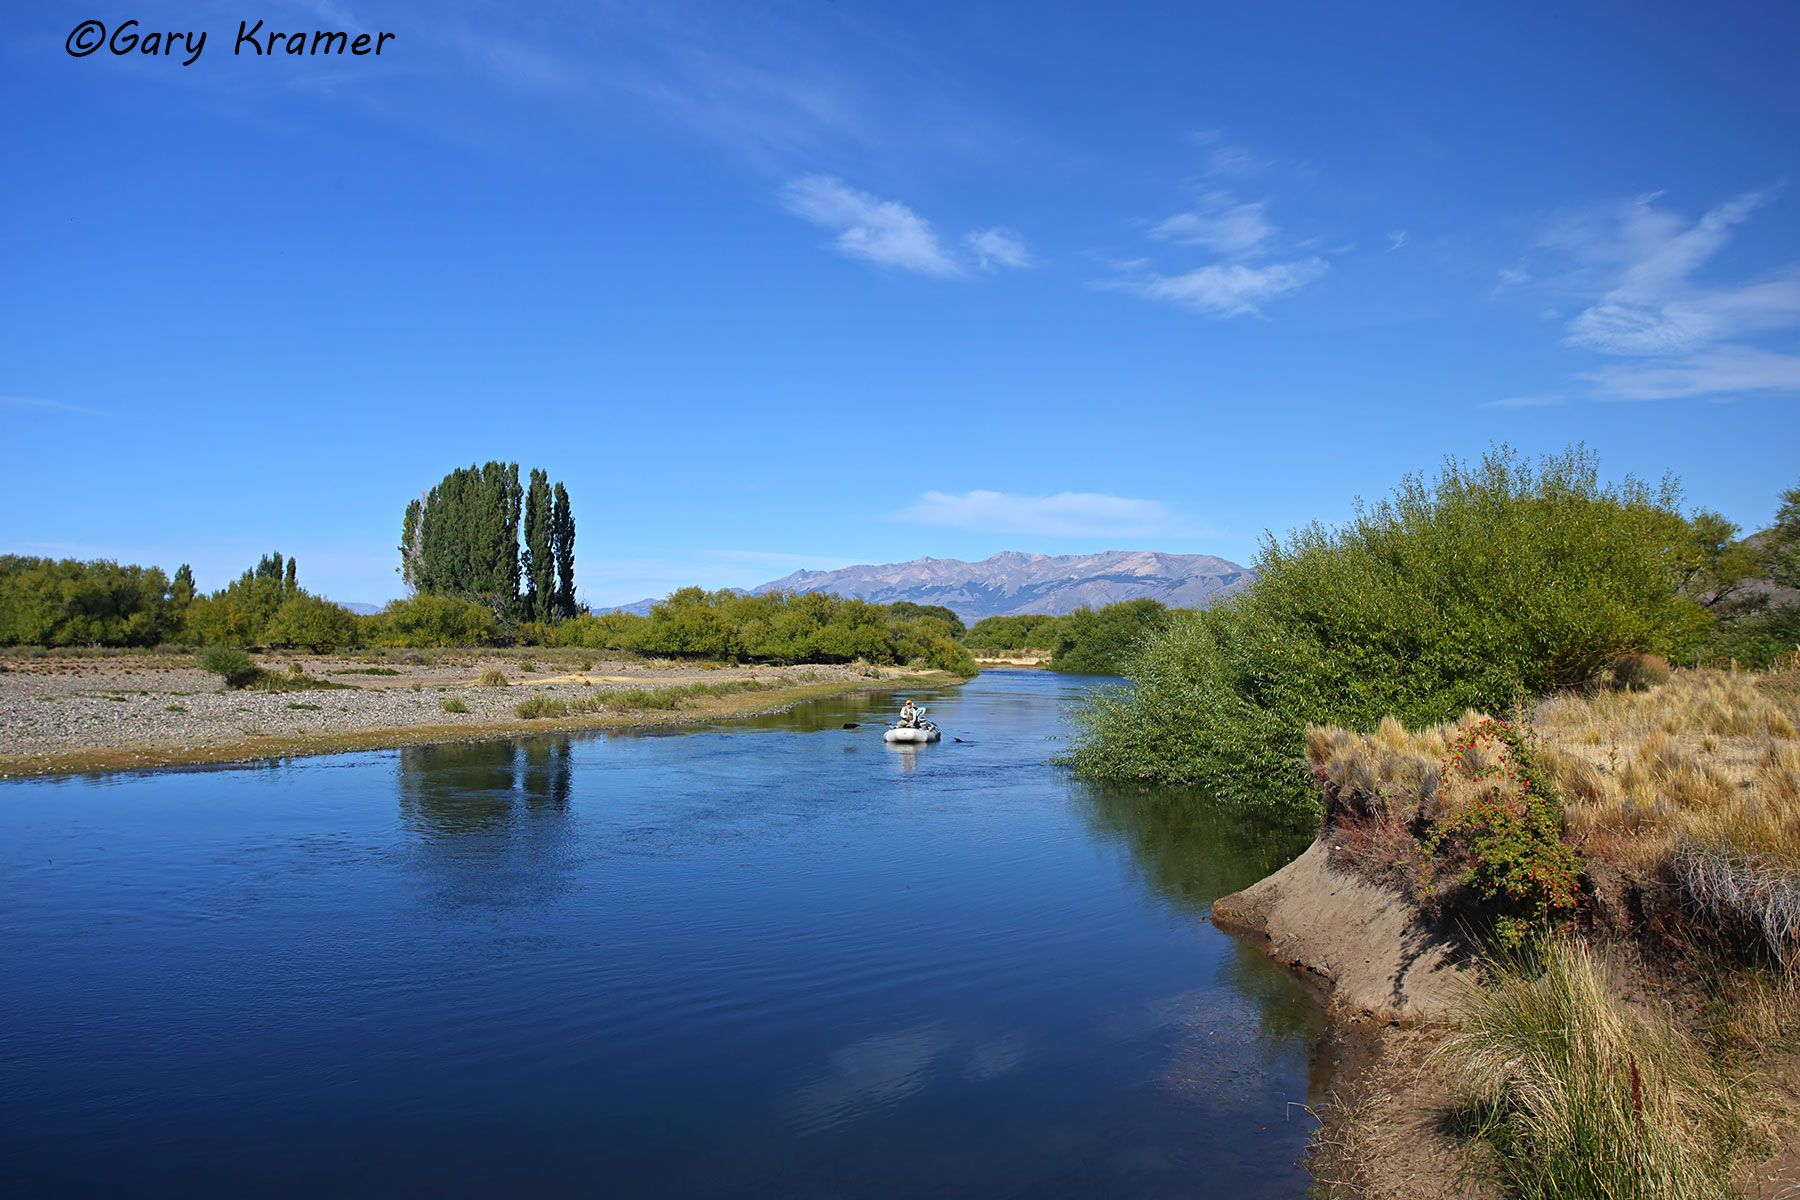 Flyfisherman/guide floating the Chubut River, Argentina - SFAcr#020d